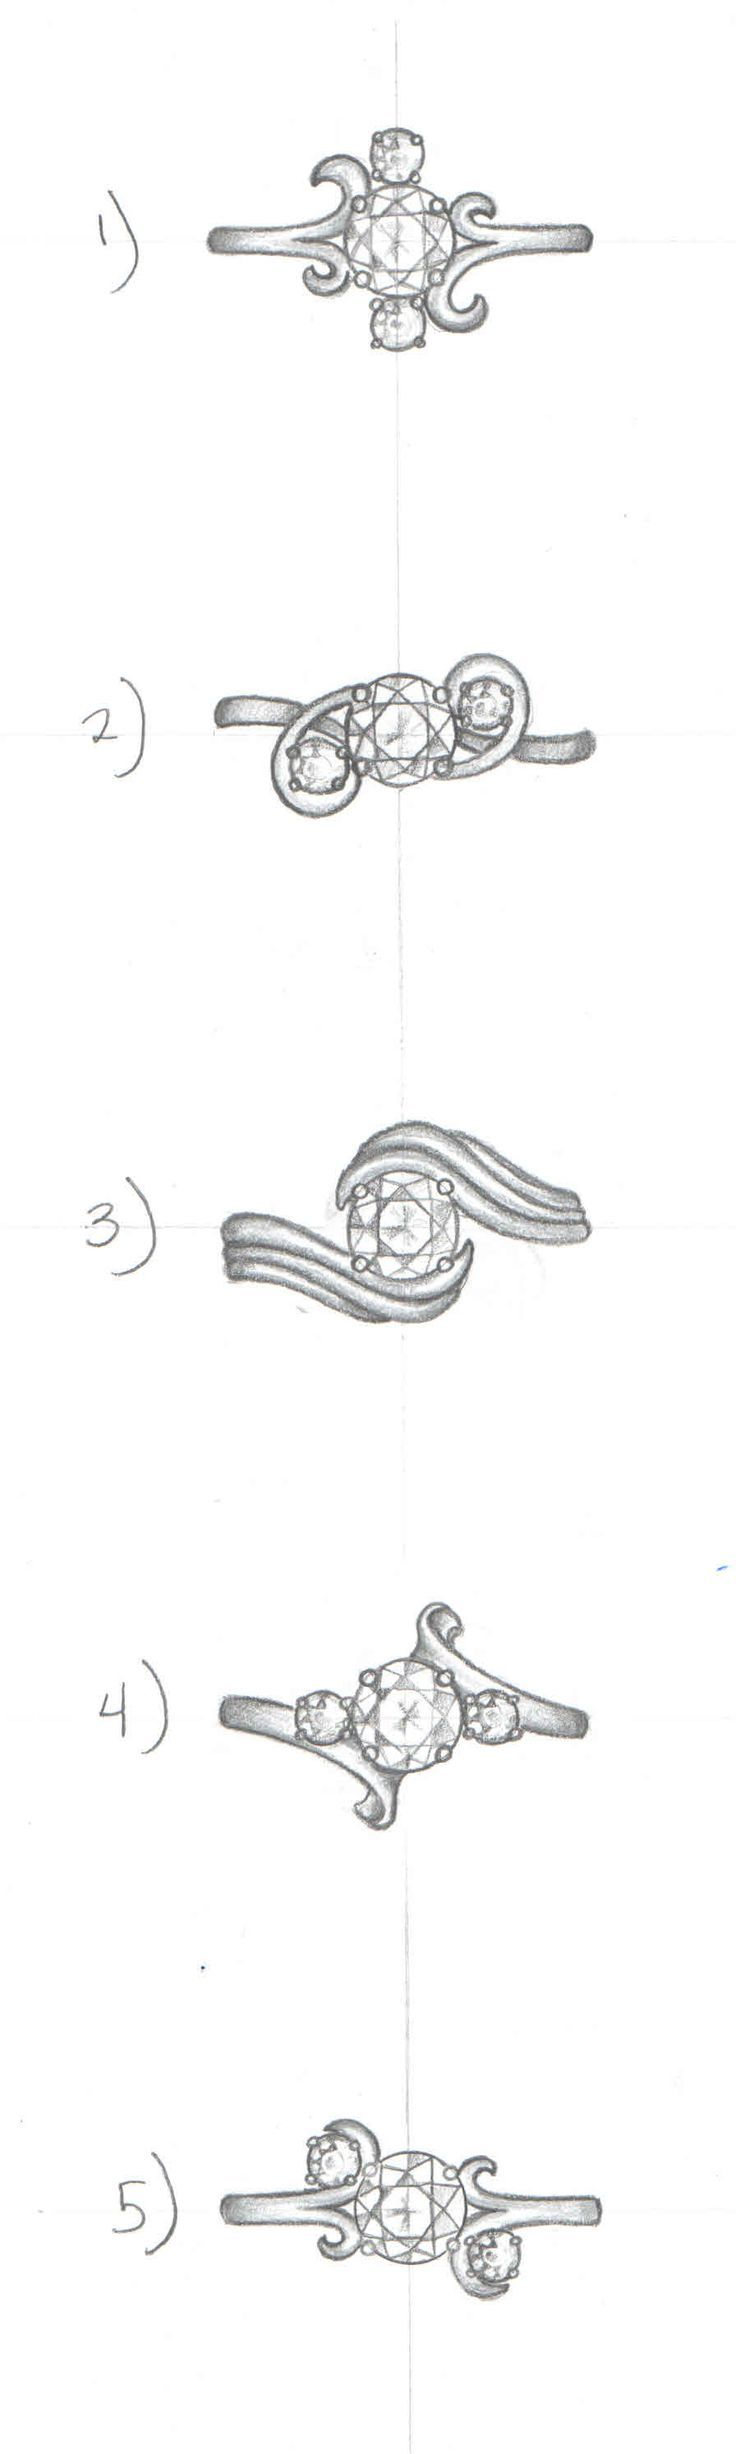 5 Whimsical Design Sketches With The Same 3 Diamonds Gives Our Customer A Great Selection To C Jewelry Design Drawing Jewellery Design Sketches Jewelry Design